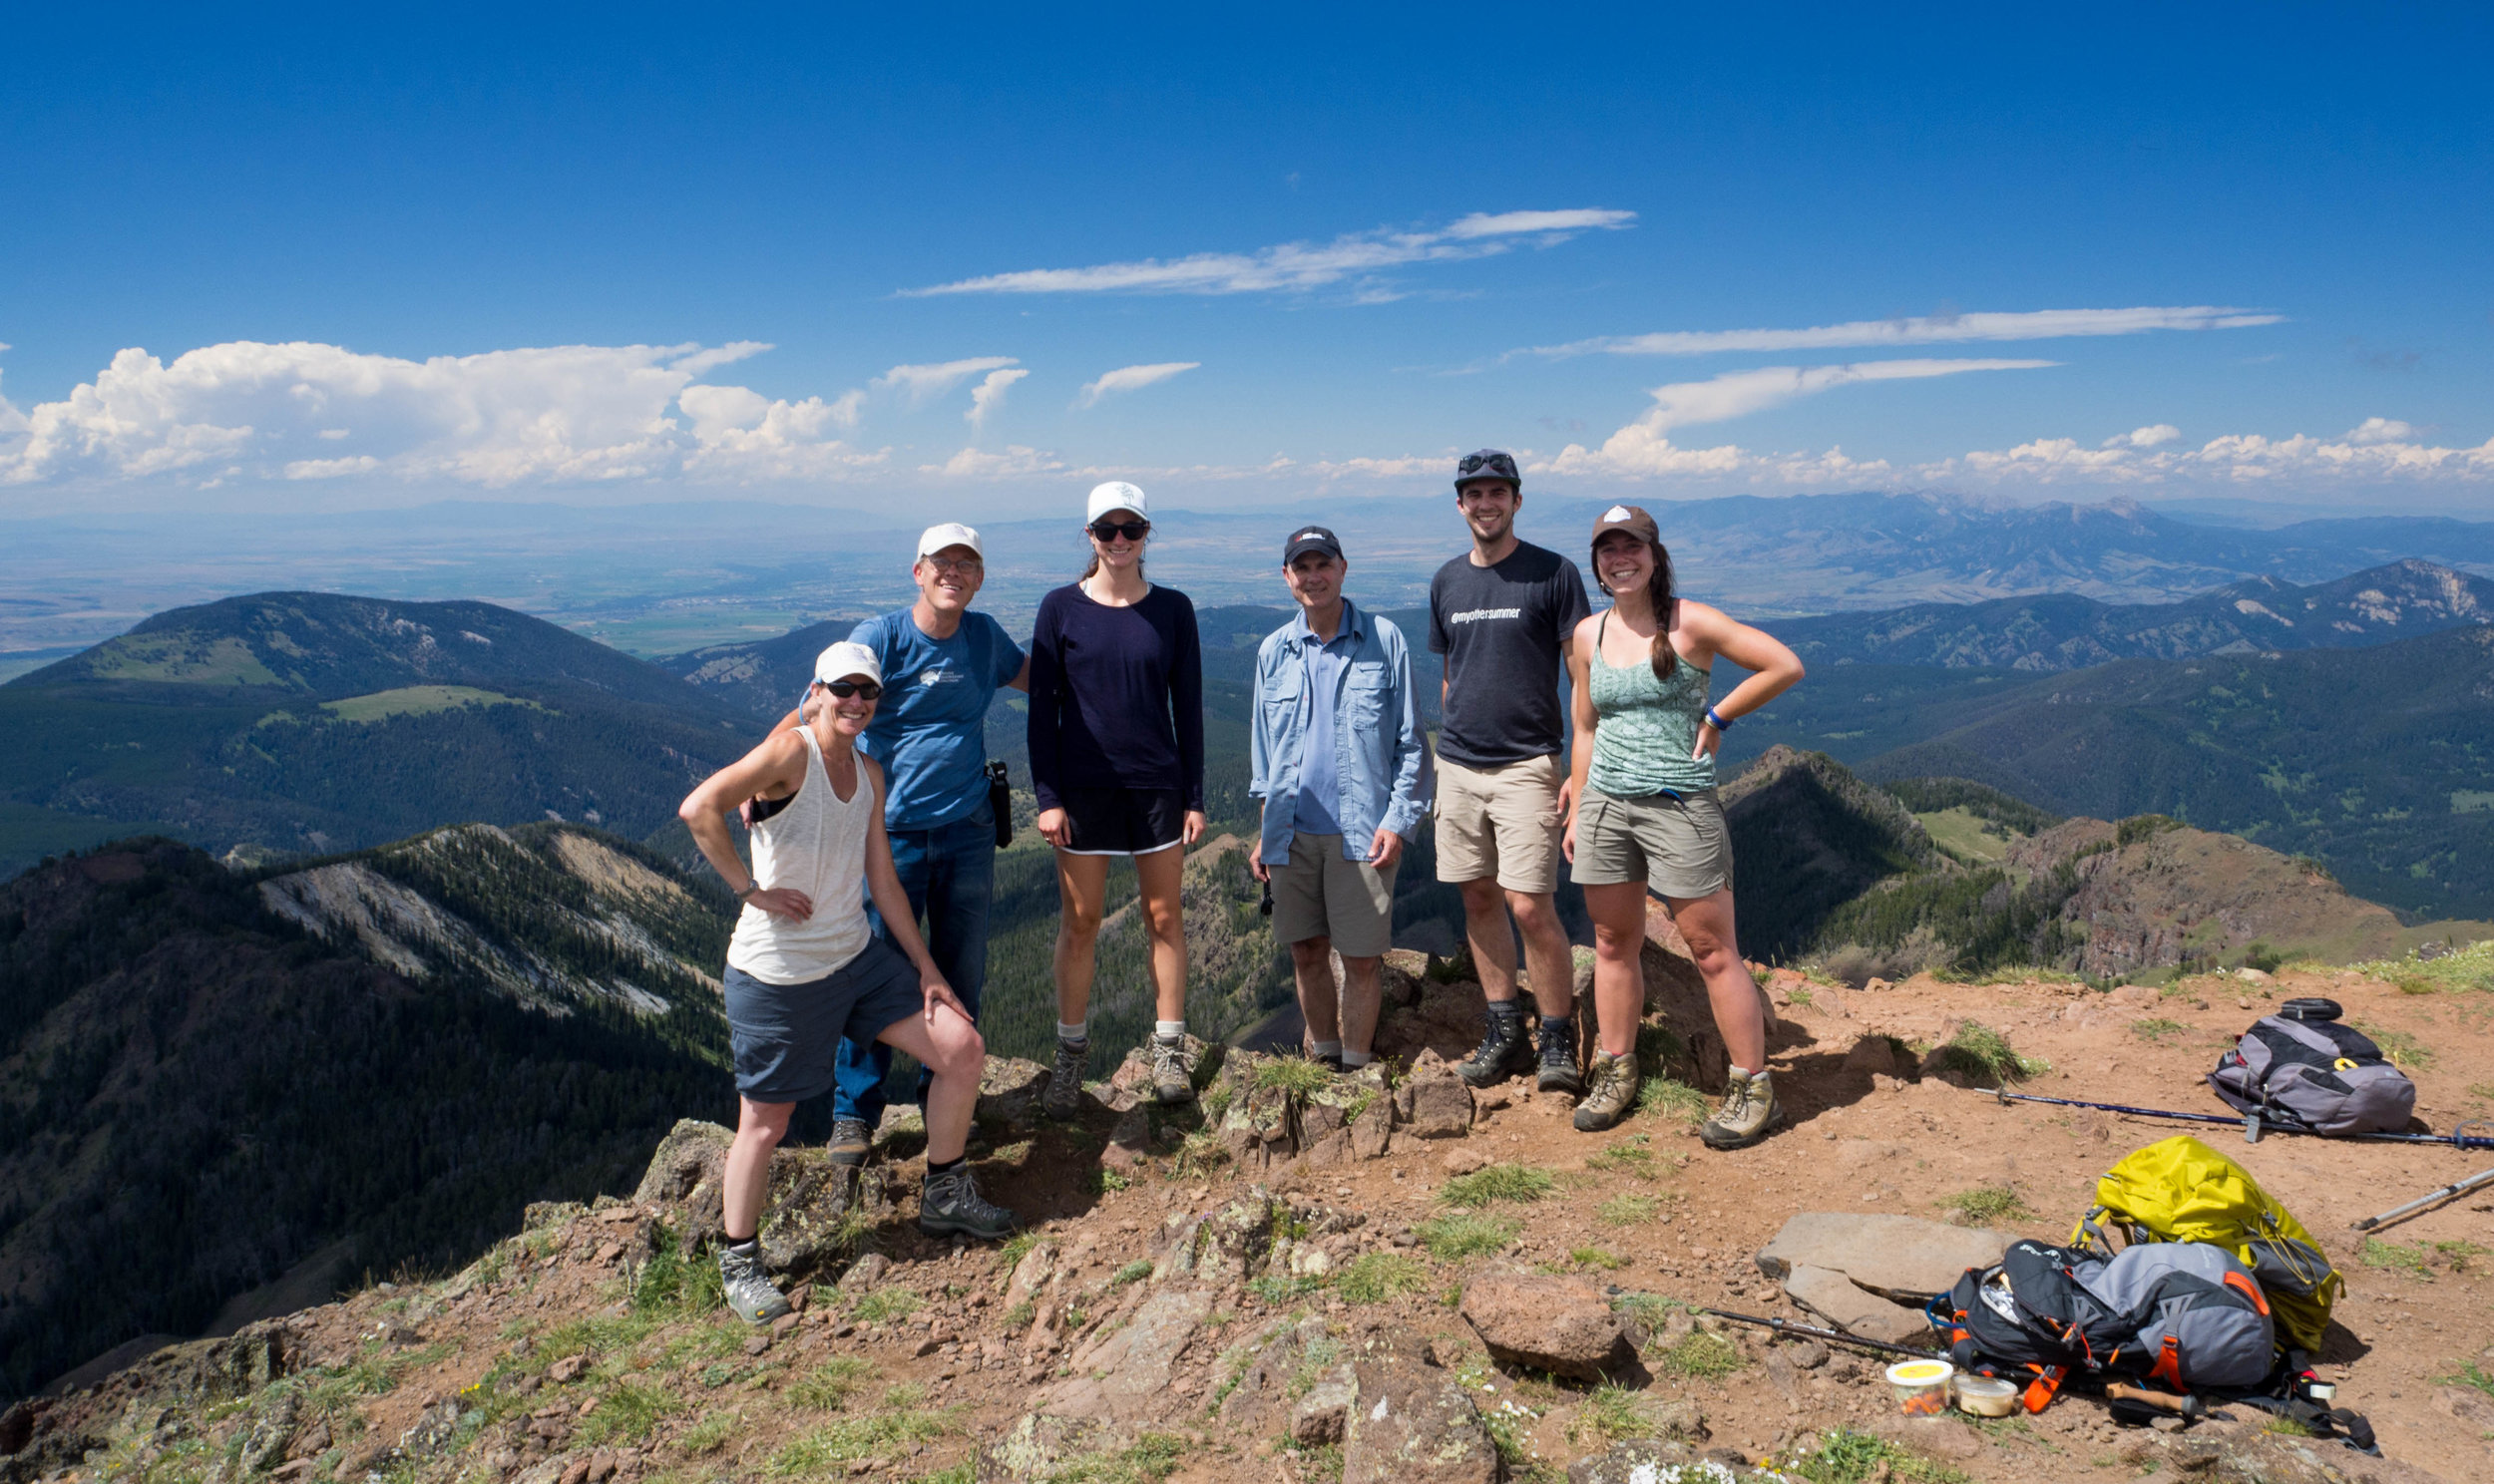 Darcie Warden, left, at the summit of Mt. Blackmore with the group of hikers. (Photo GYC.)